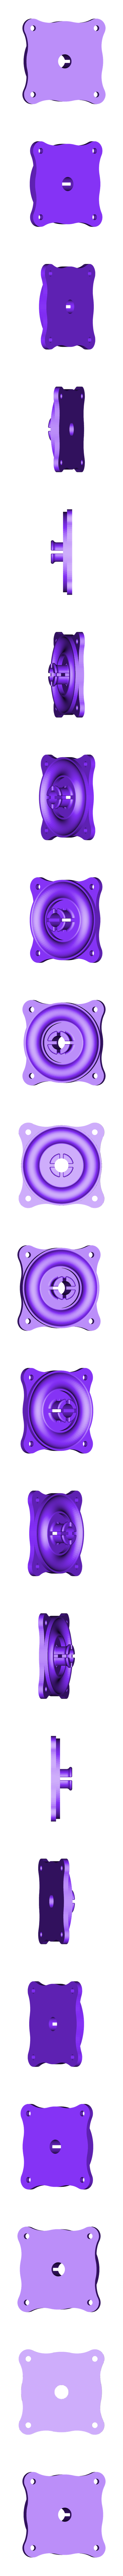 finaltop2.stl Download free STL file Marble Lazy Susan Bearing (No Hardware Required!) • 3D printer template, wildrosebuilds